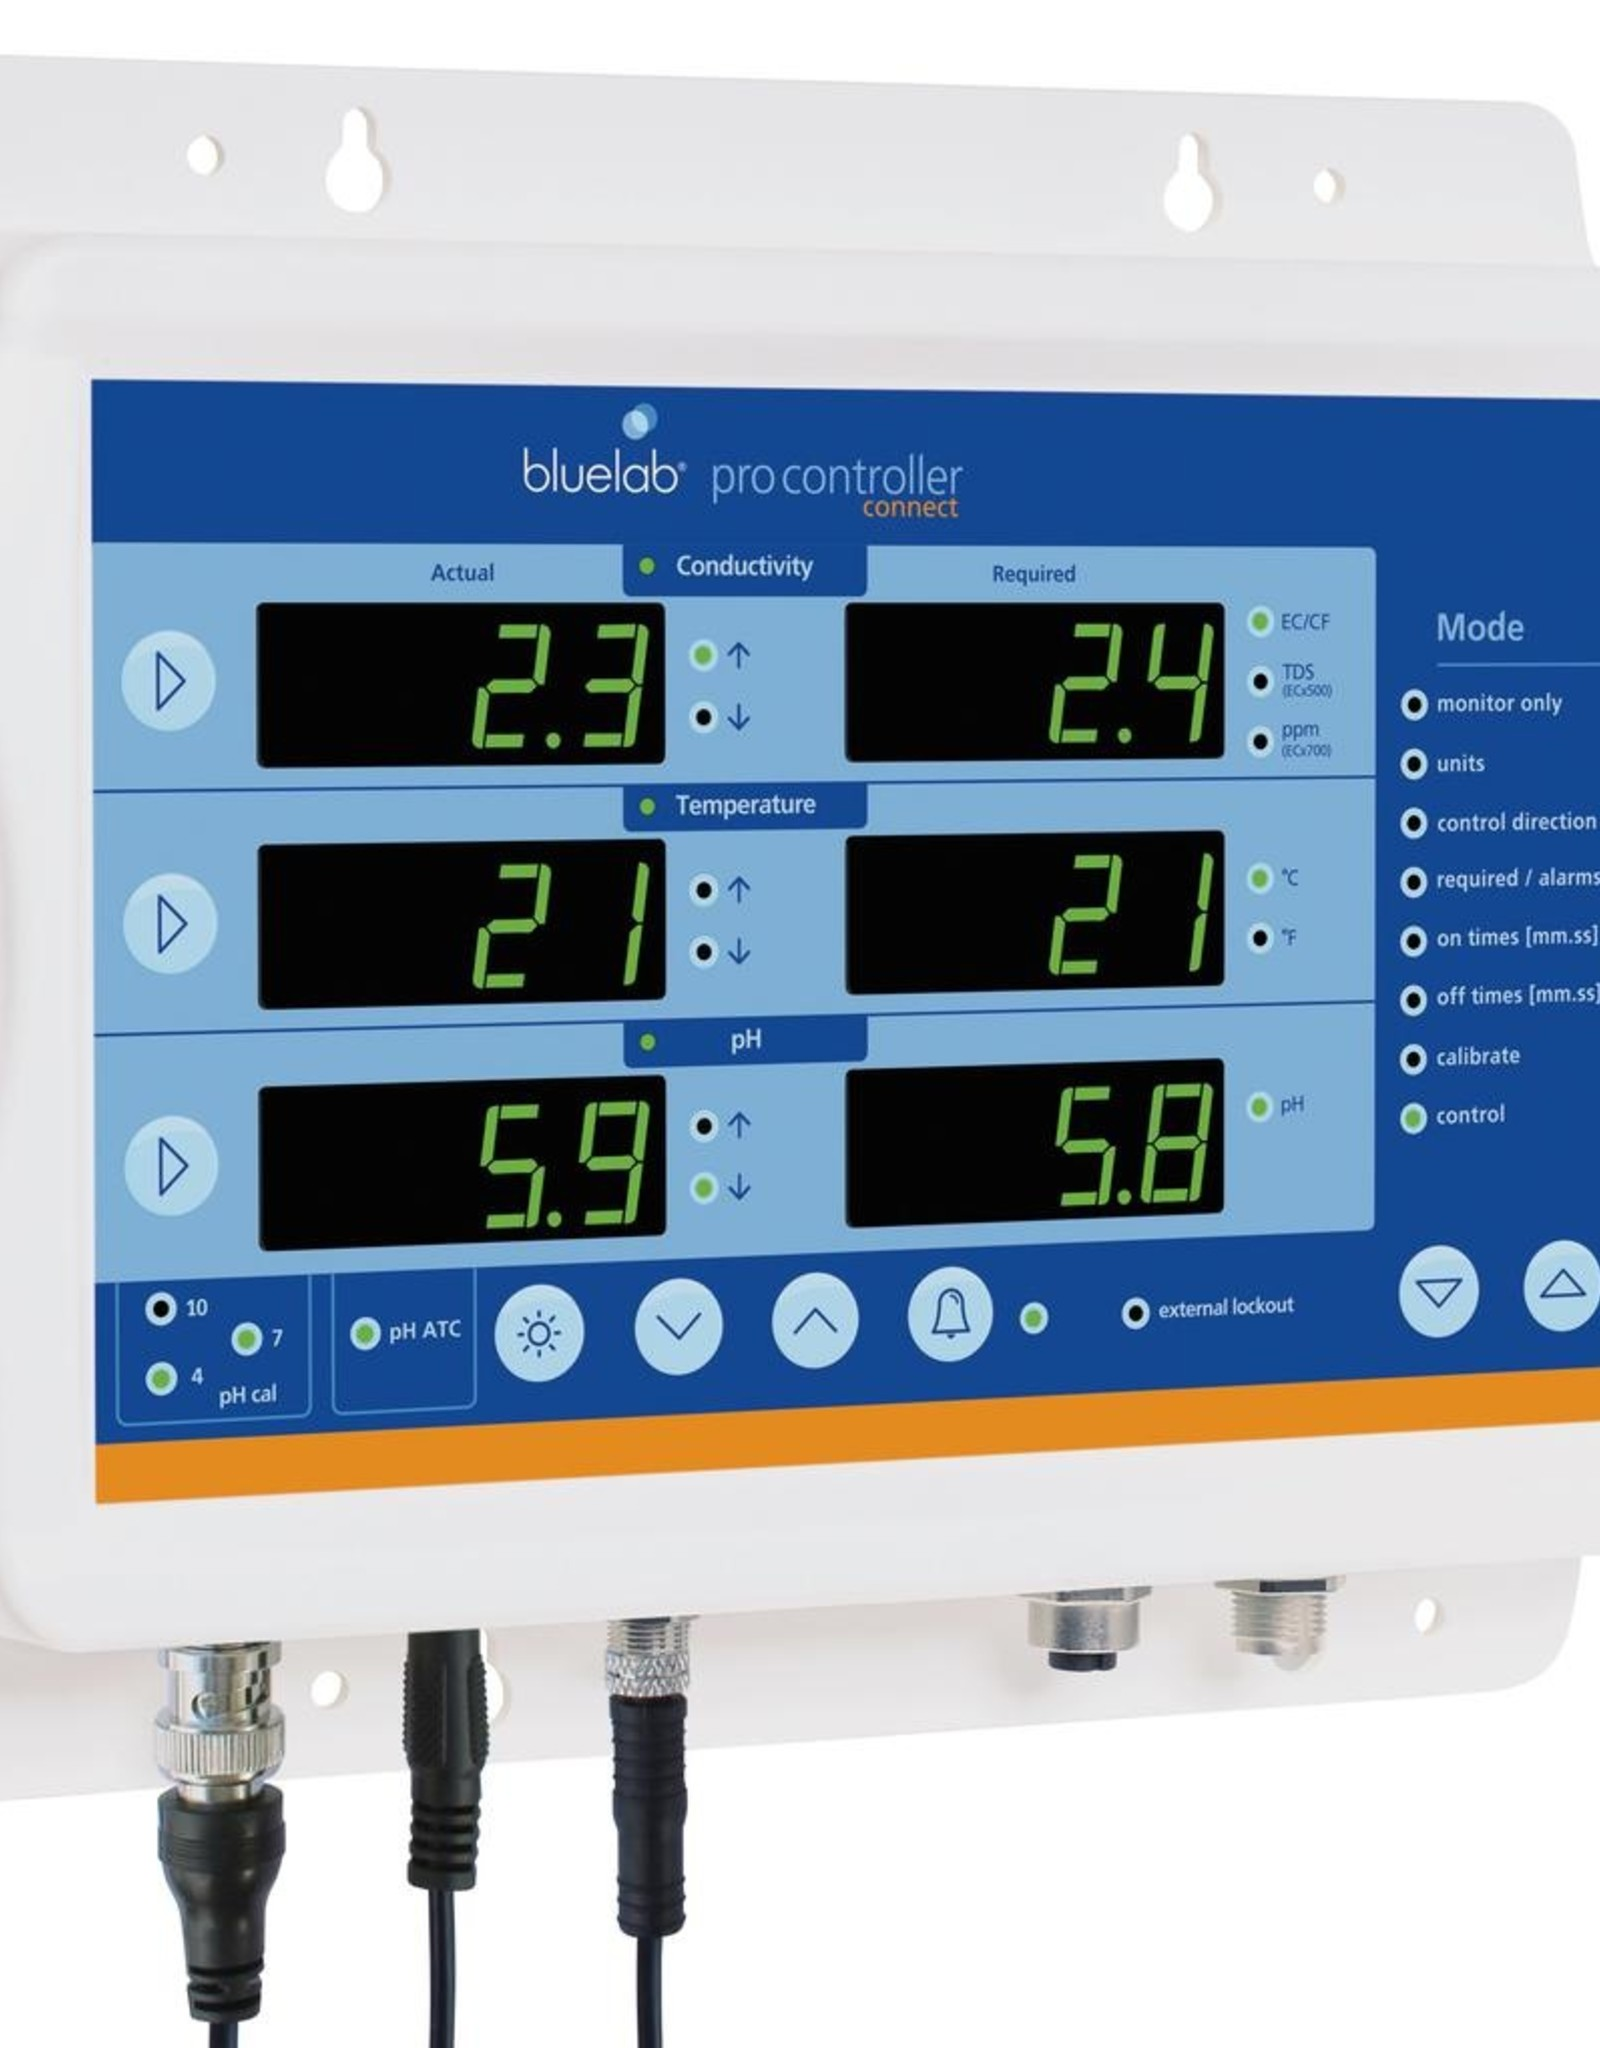 BLUE LAB Bluelab® Pro Controller™ automated pH and nutrient controller gives you full control of reservoir pH, conductivity and temperature in one place. When connected to a dosing system, the Bluelab® Pro Controller™ manages pH, conductivity and temperature level